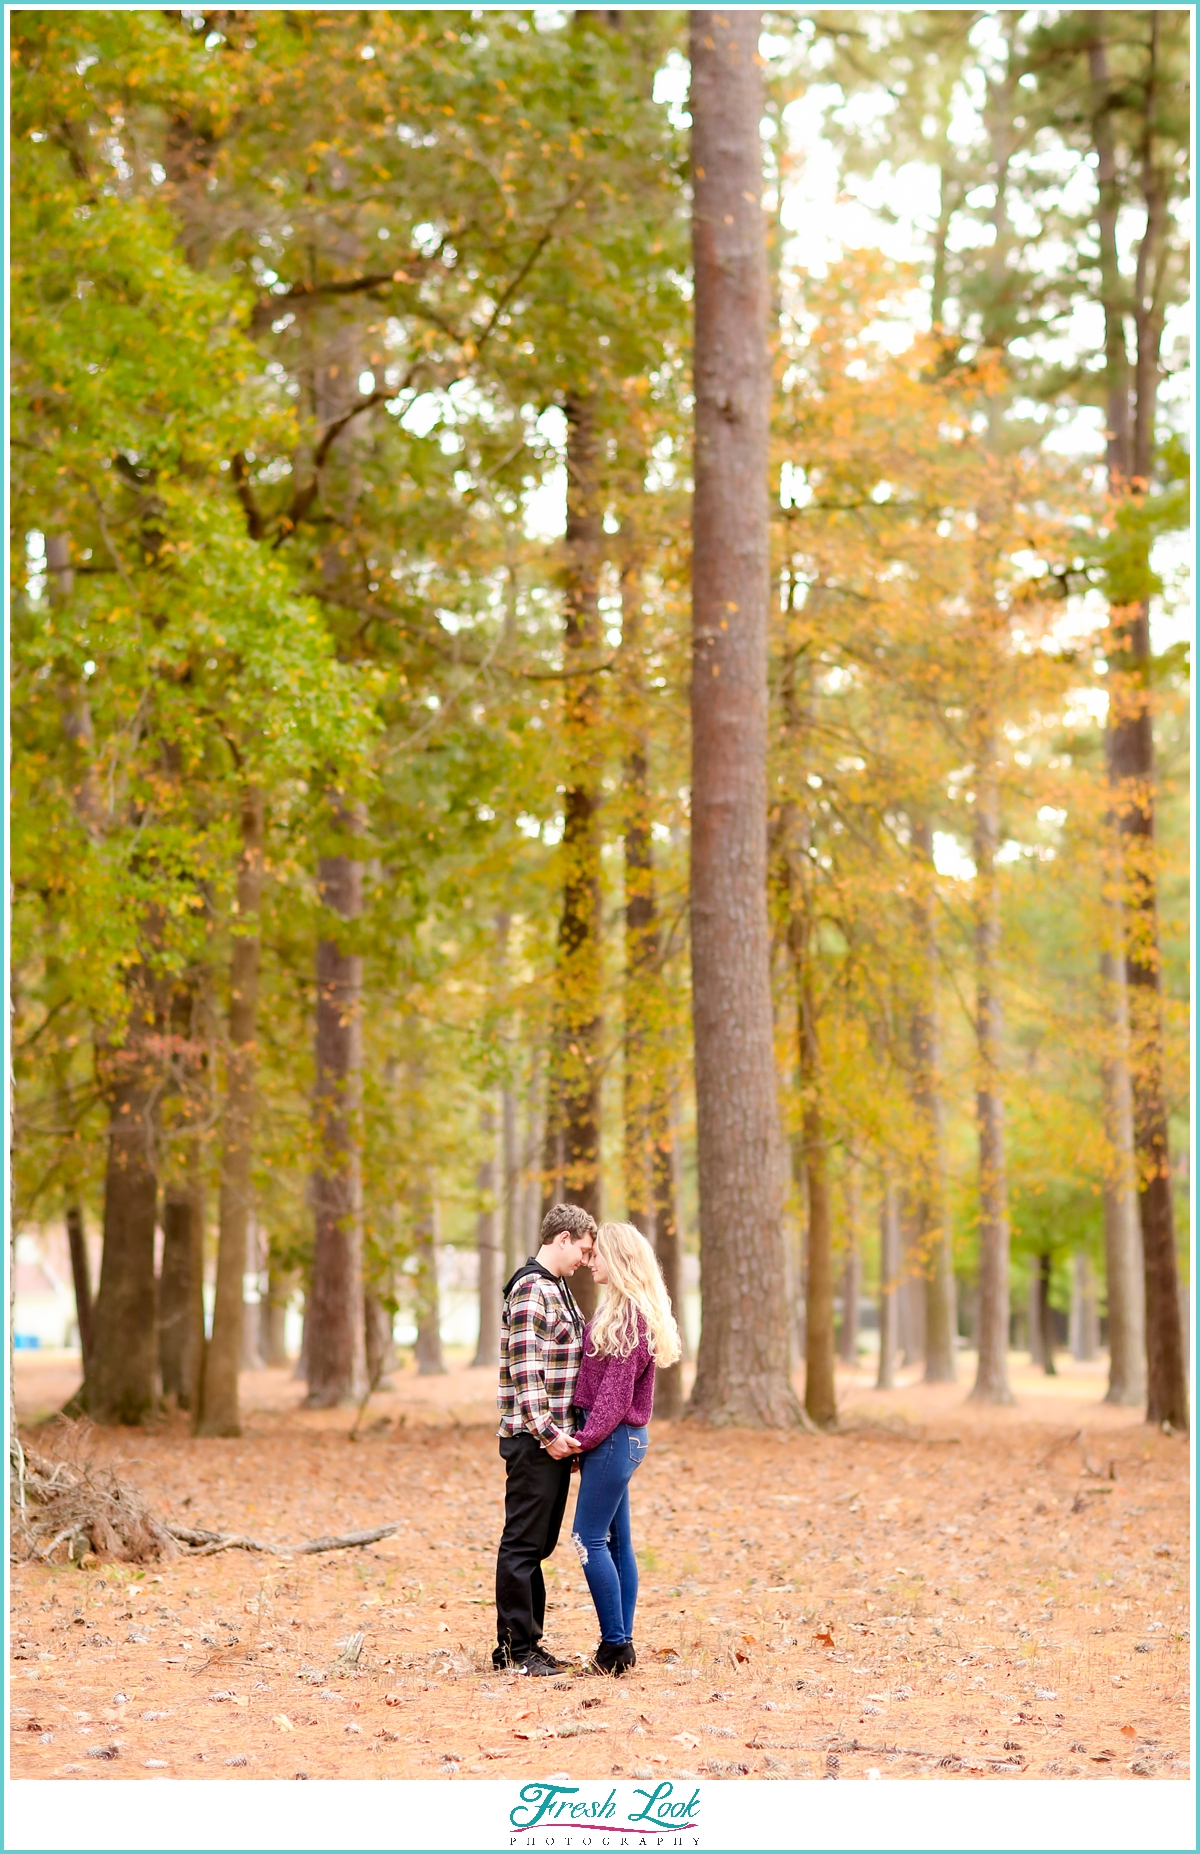 romantic woodsy photoshoot ideas